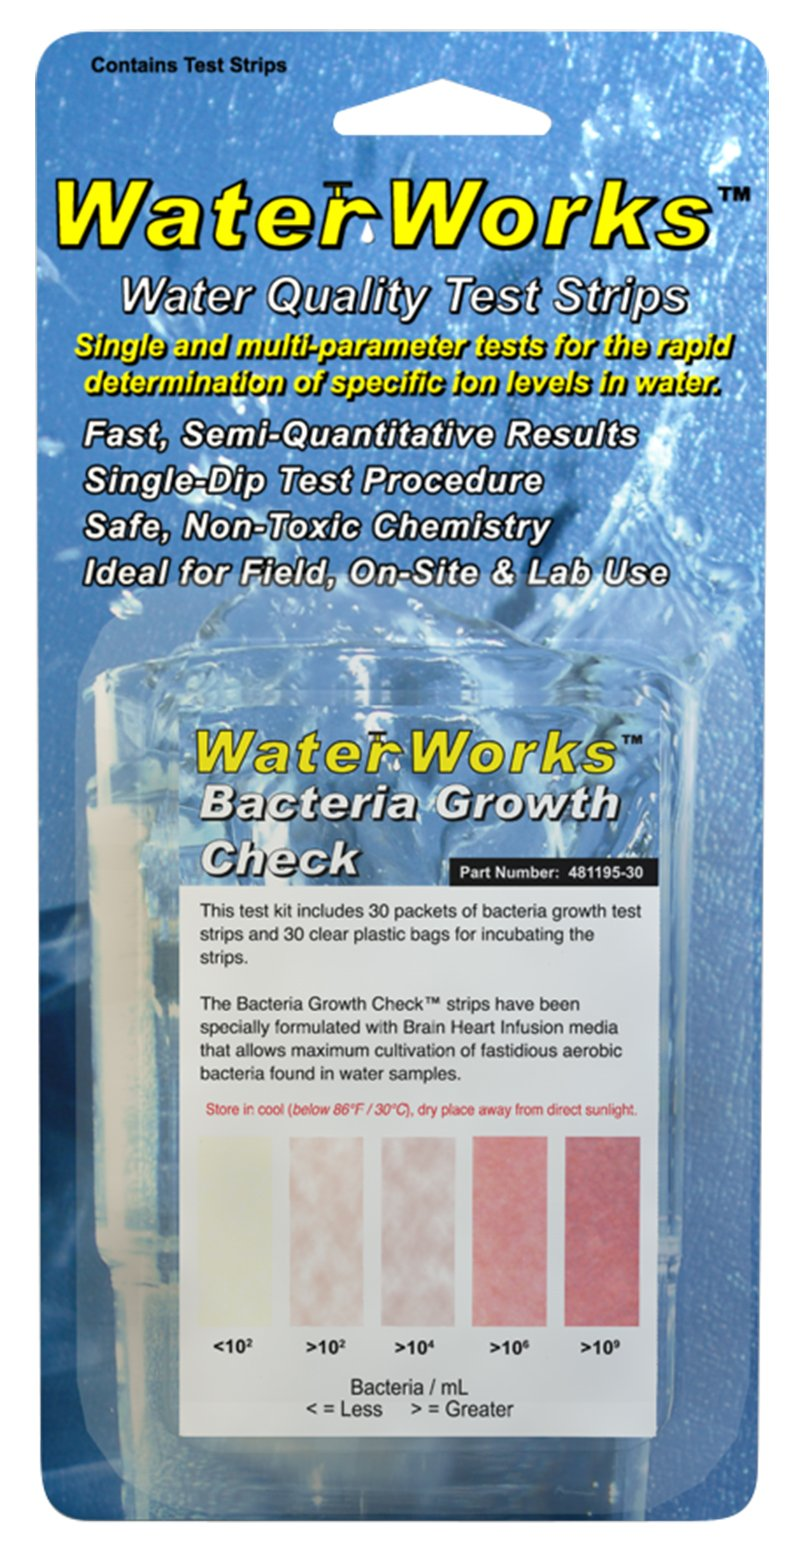 Industrial Test Systems WaterWorks 481195-30 Bacteria Growth Check, 30 Tests(Water Quality Test Strips)